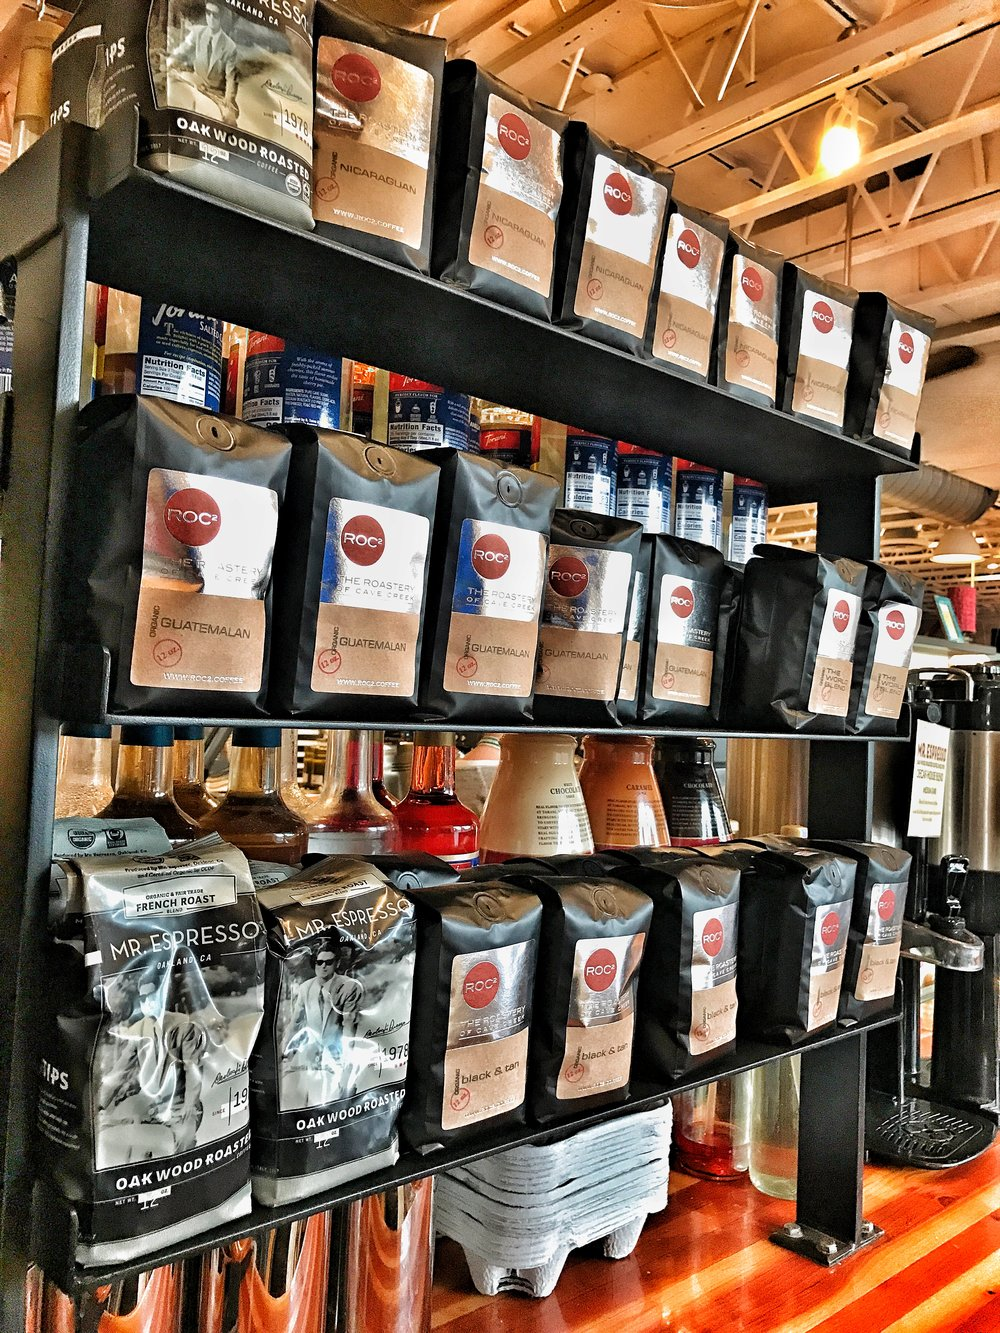 ROC2 retail coffee available at La Grande Orange - Phoenix